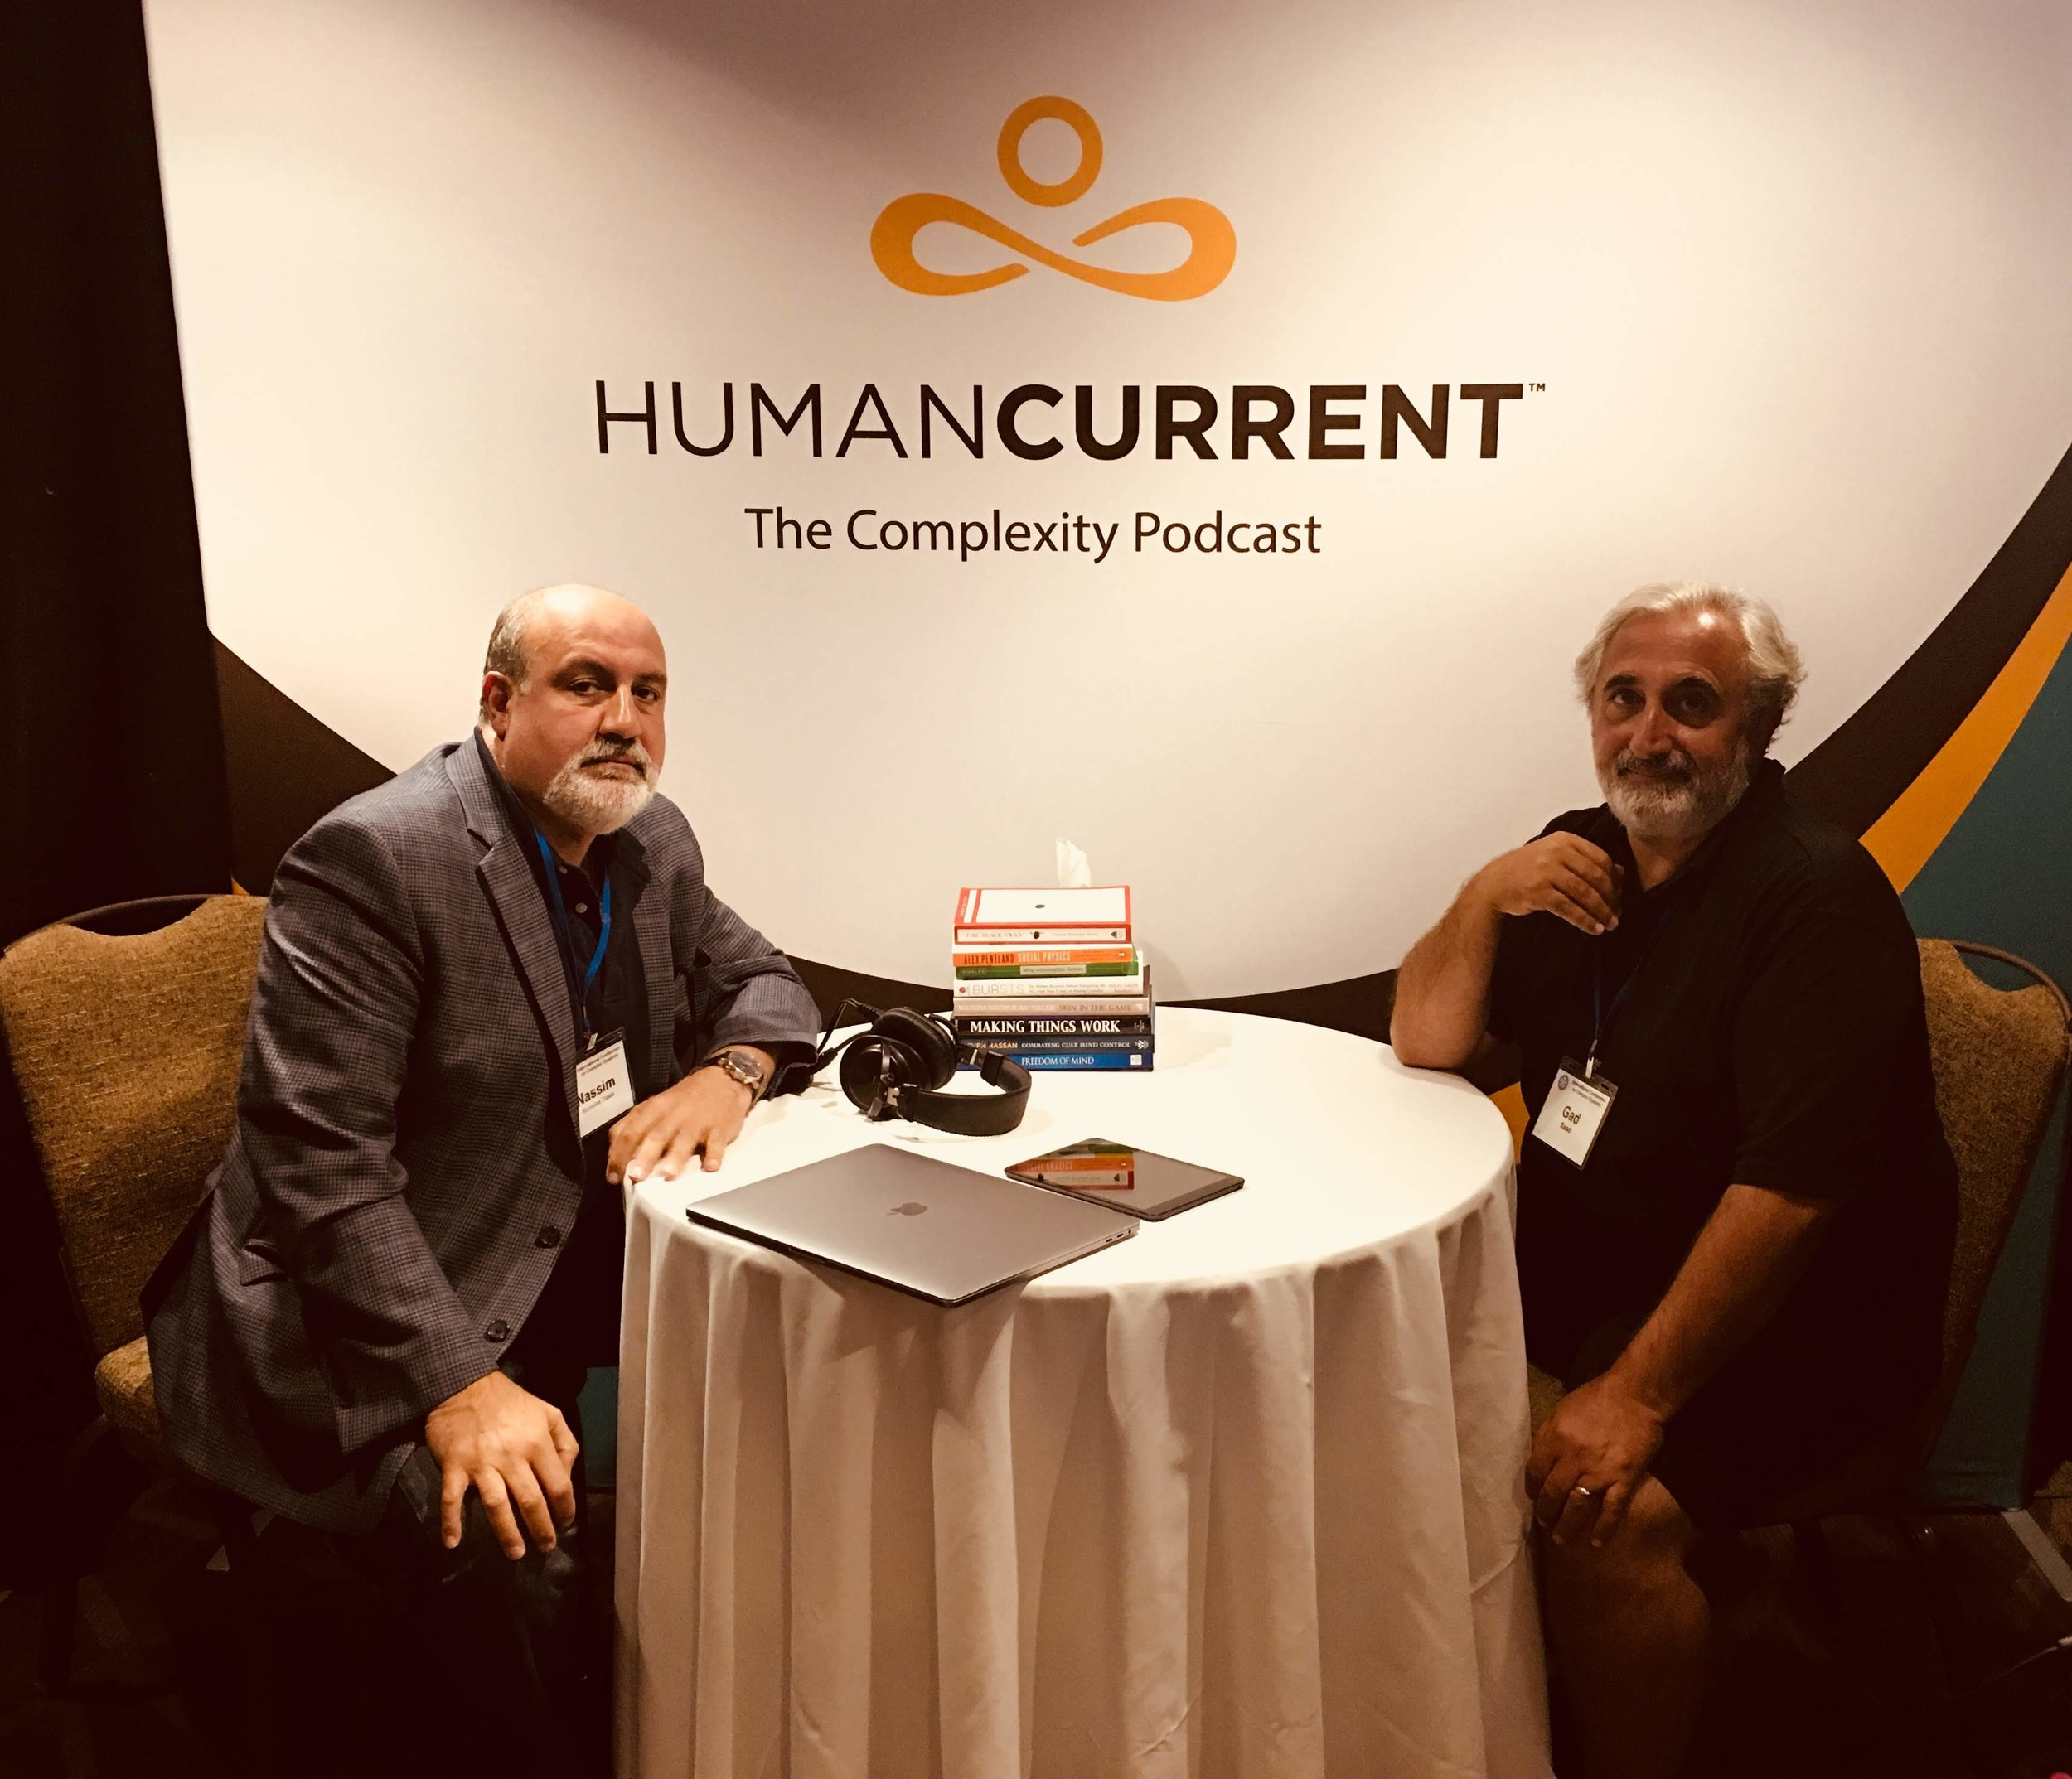 Nassim Nicholas Taleb (left) with Gad Saad (right) at the Ninth International Conference on Complex Systems